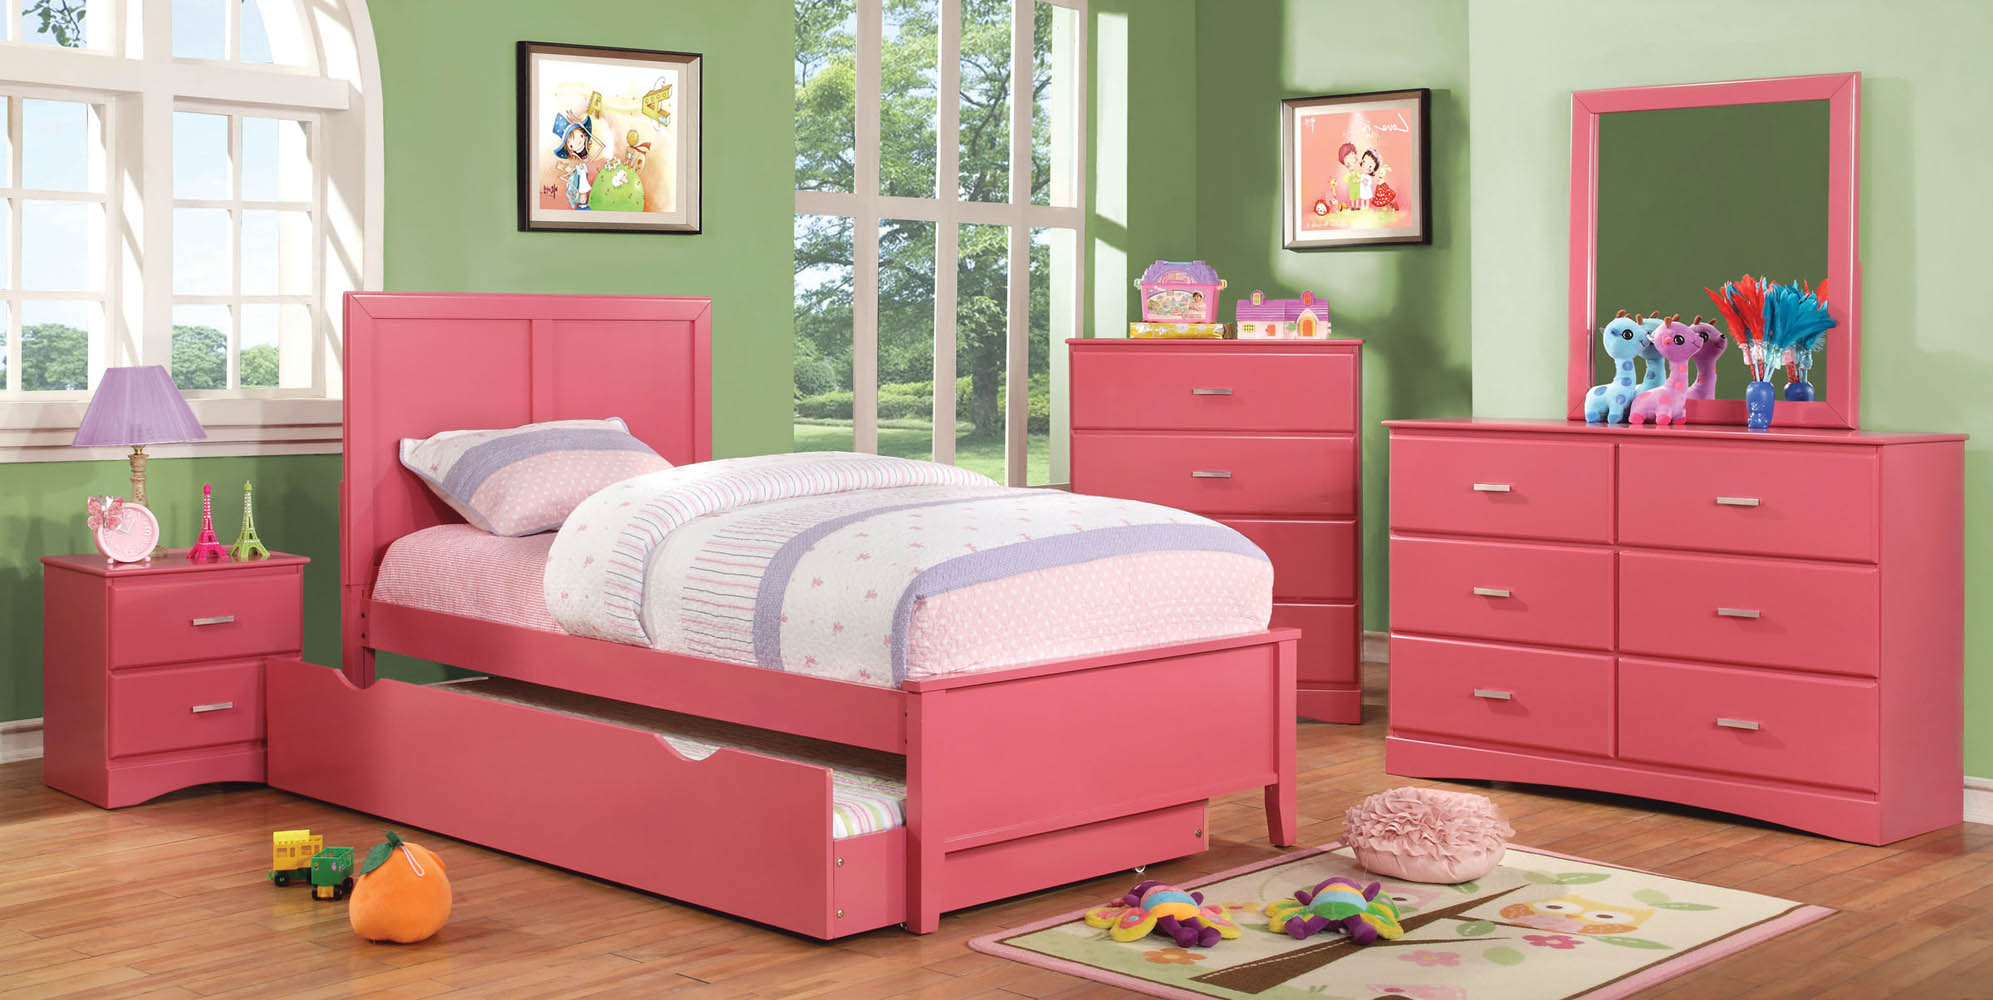 home bedroom pink bed frame